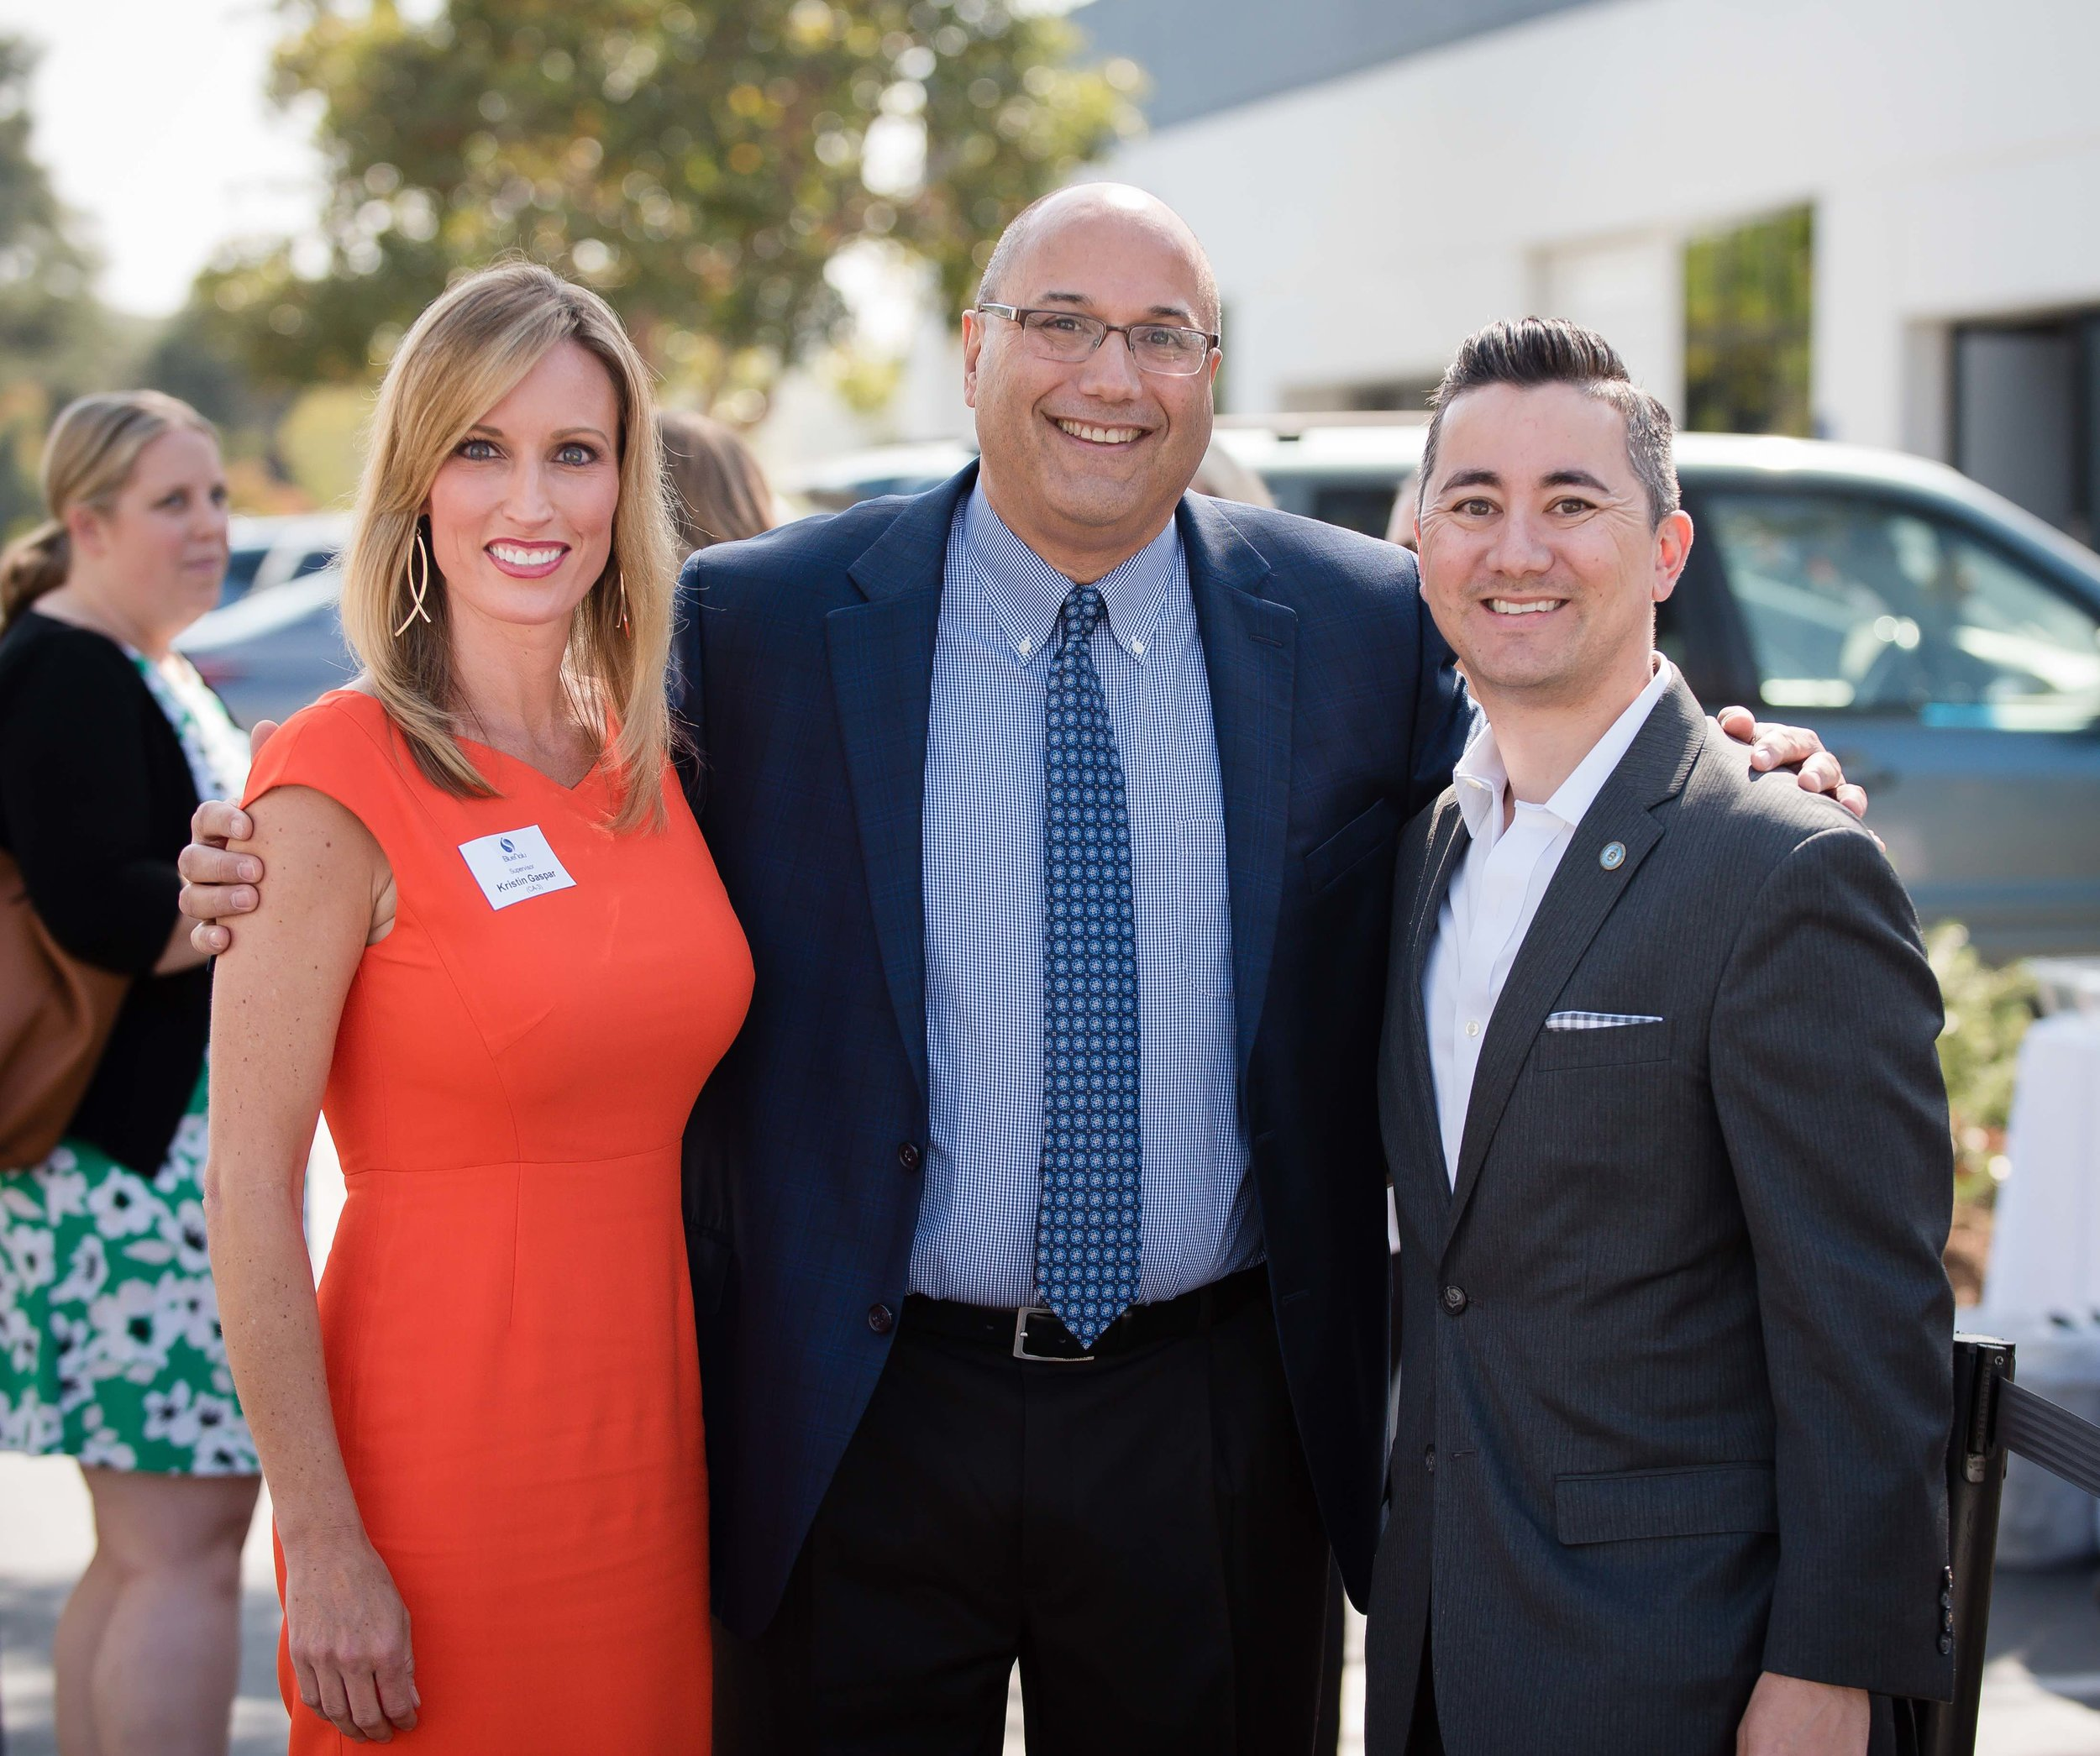 County Supervisor Kristin Gaspar, Lou Cooperhouse, CEO of BlueNalu, and Councilmember Chris Cate at the BlueNalu Ribbon Cutting Ceremony, Earth Day, April 22, 2019.